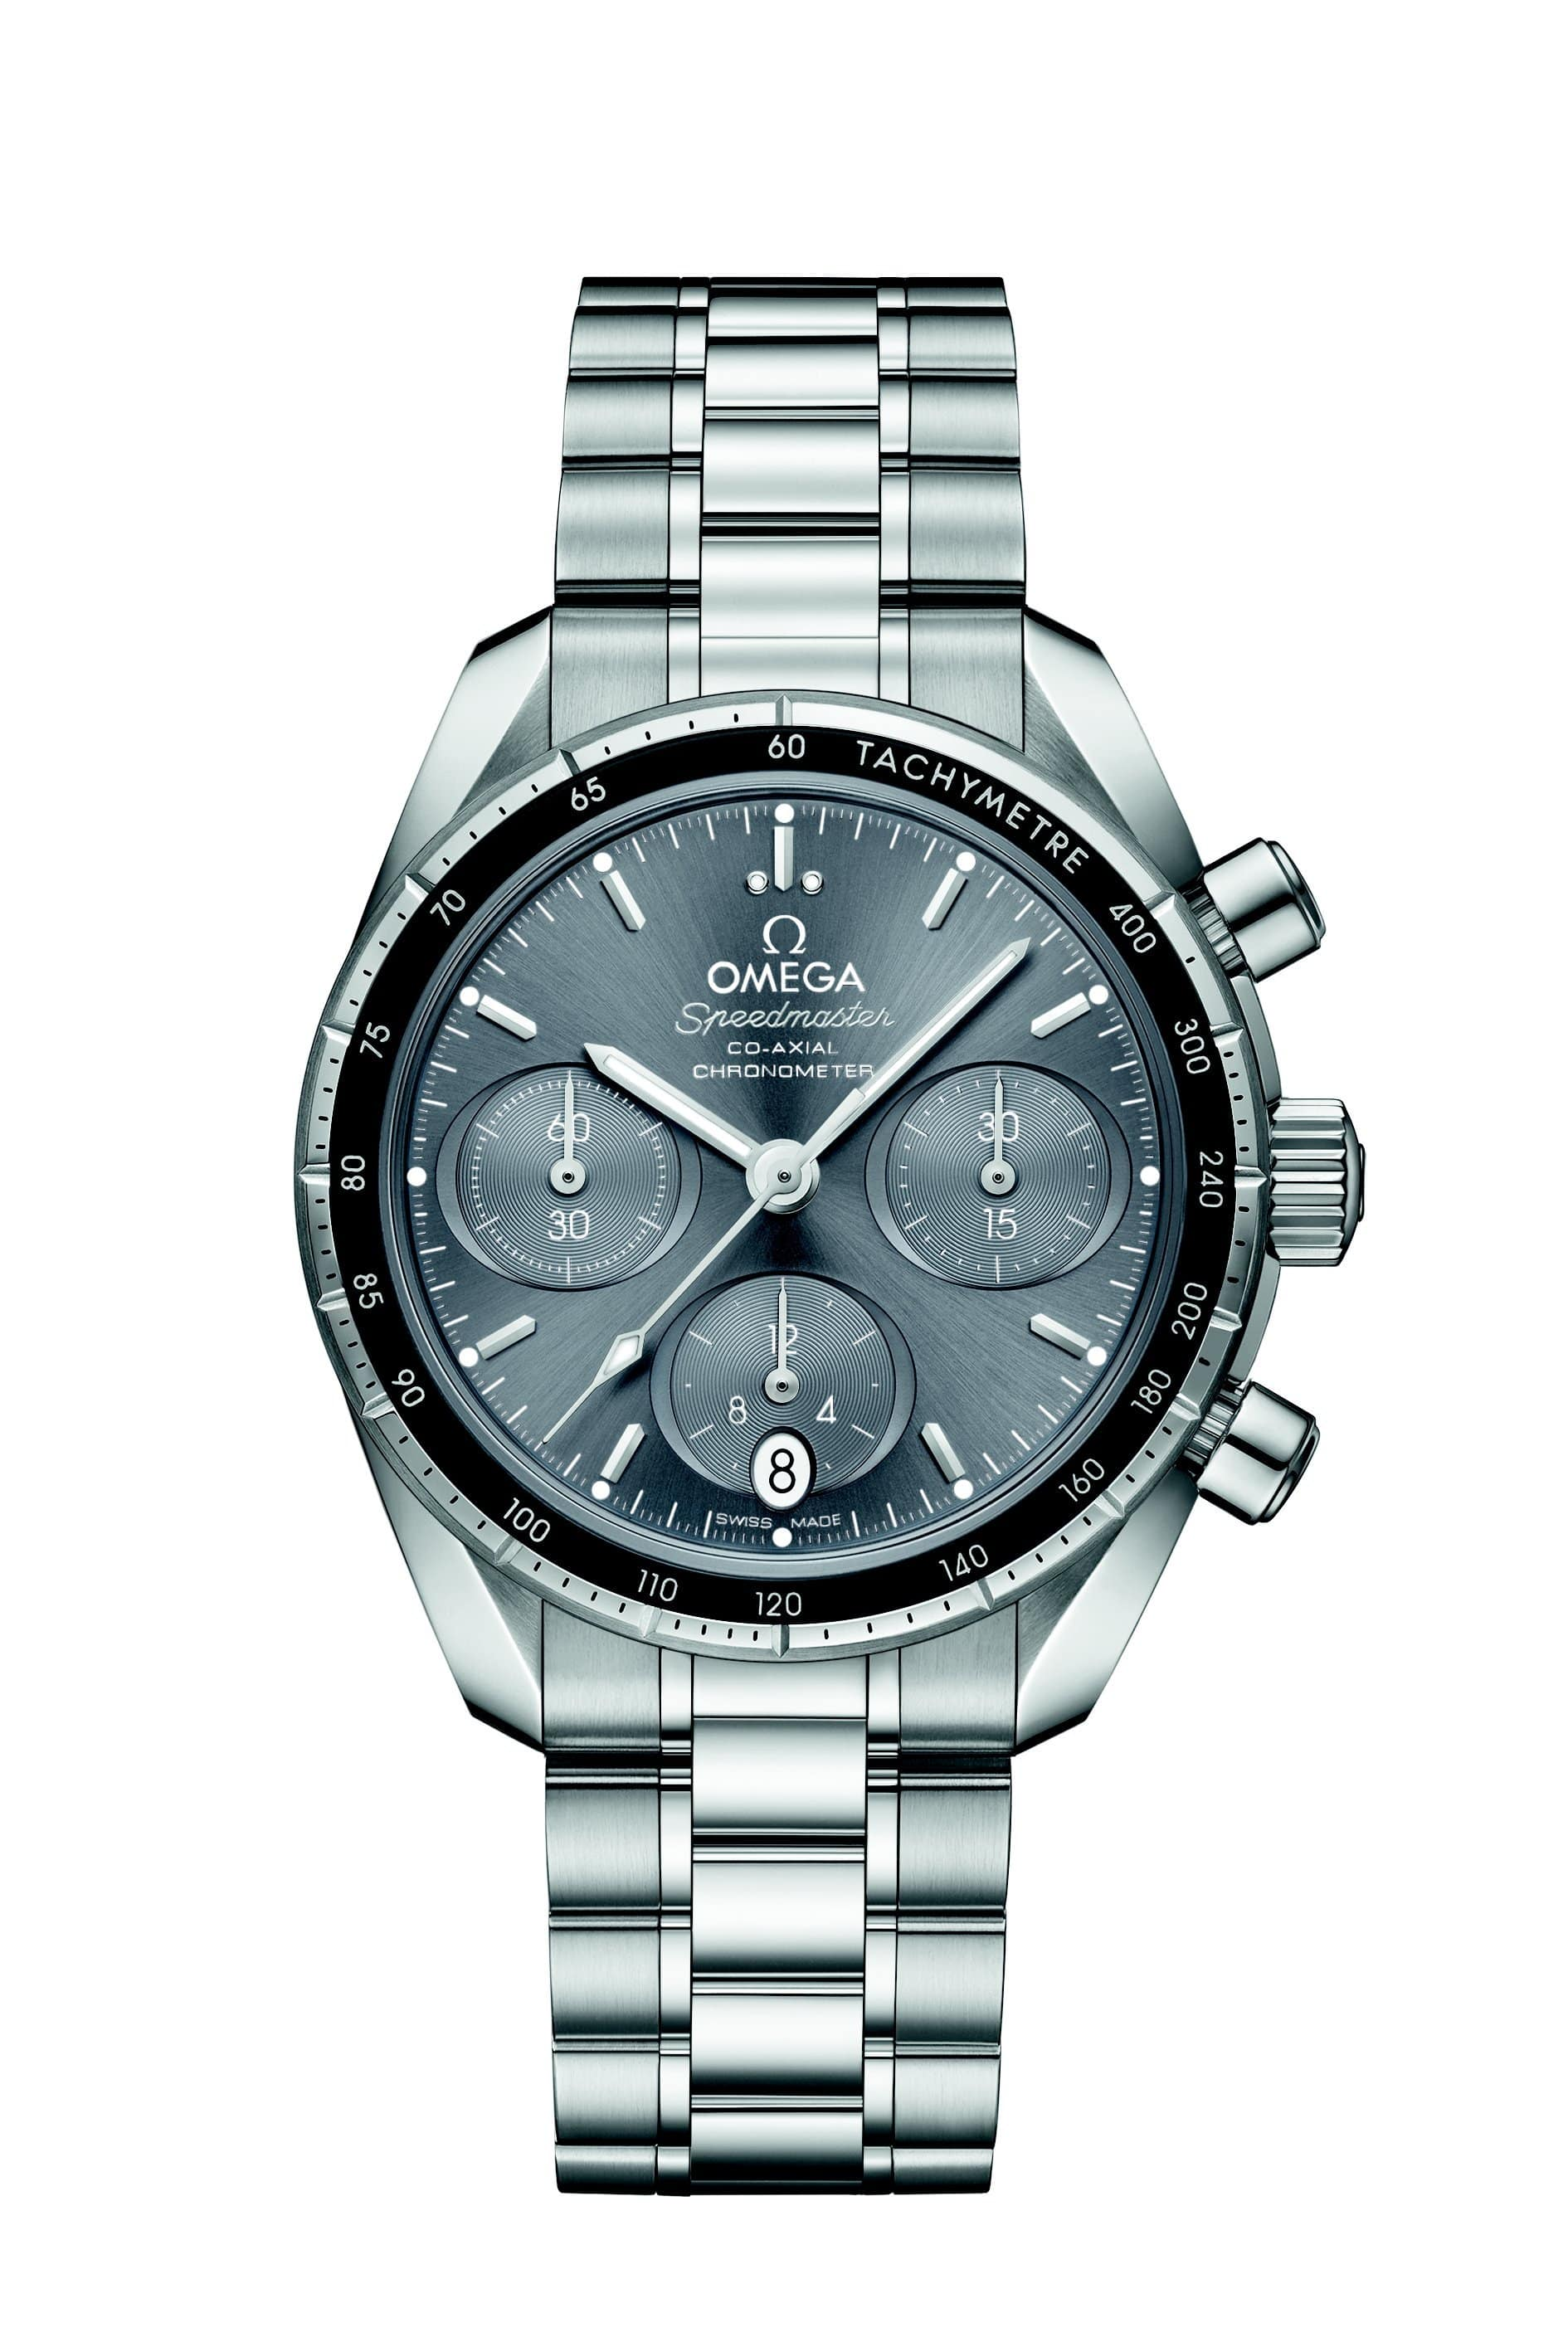 OMEGA Watch OMEGA Speedmaster Watch